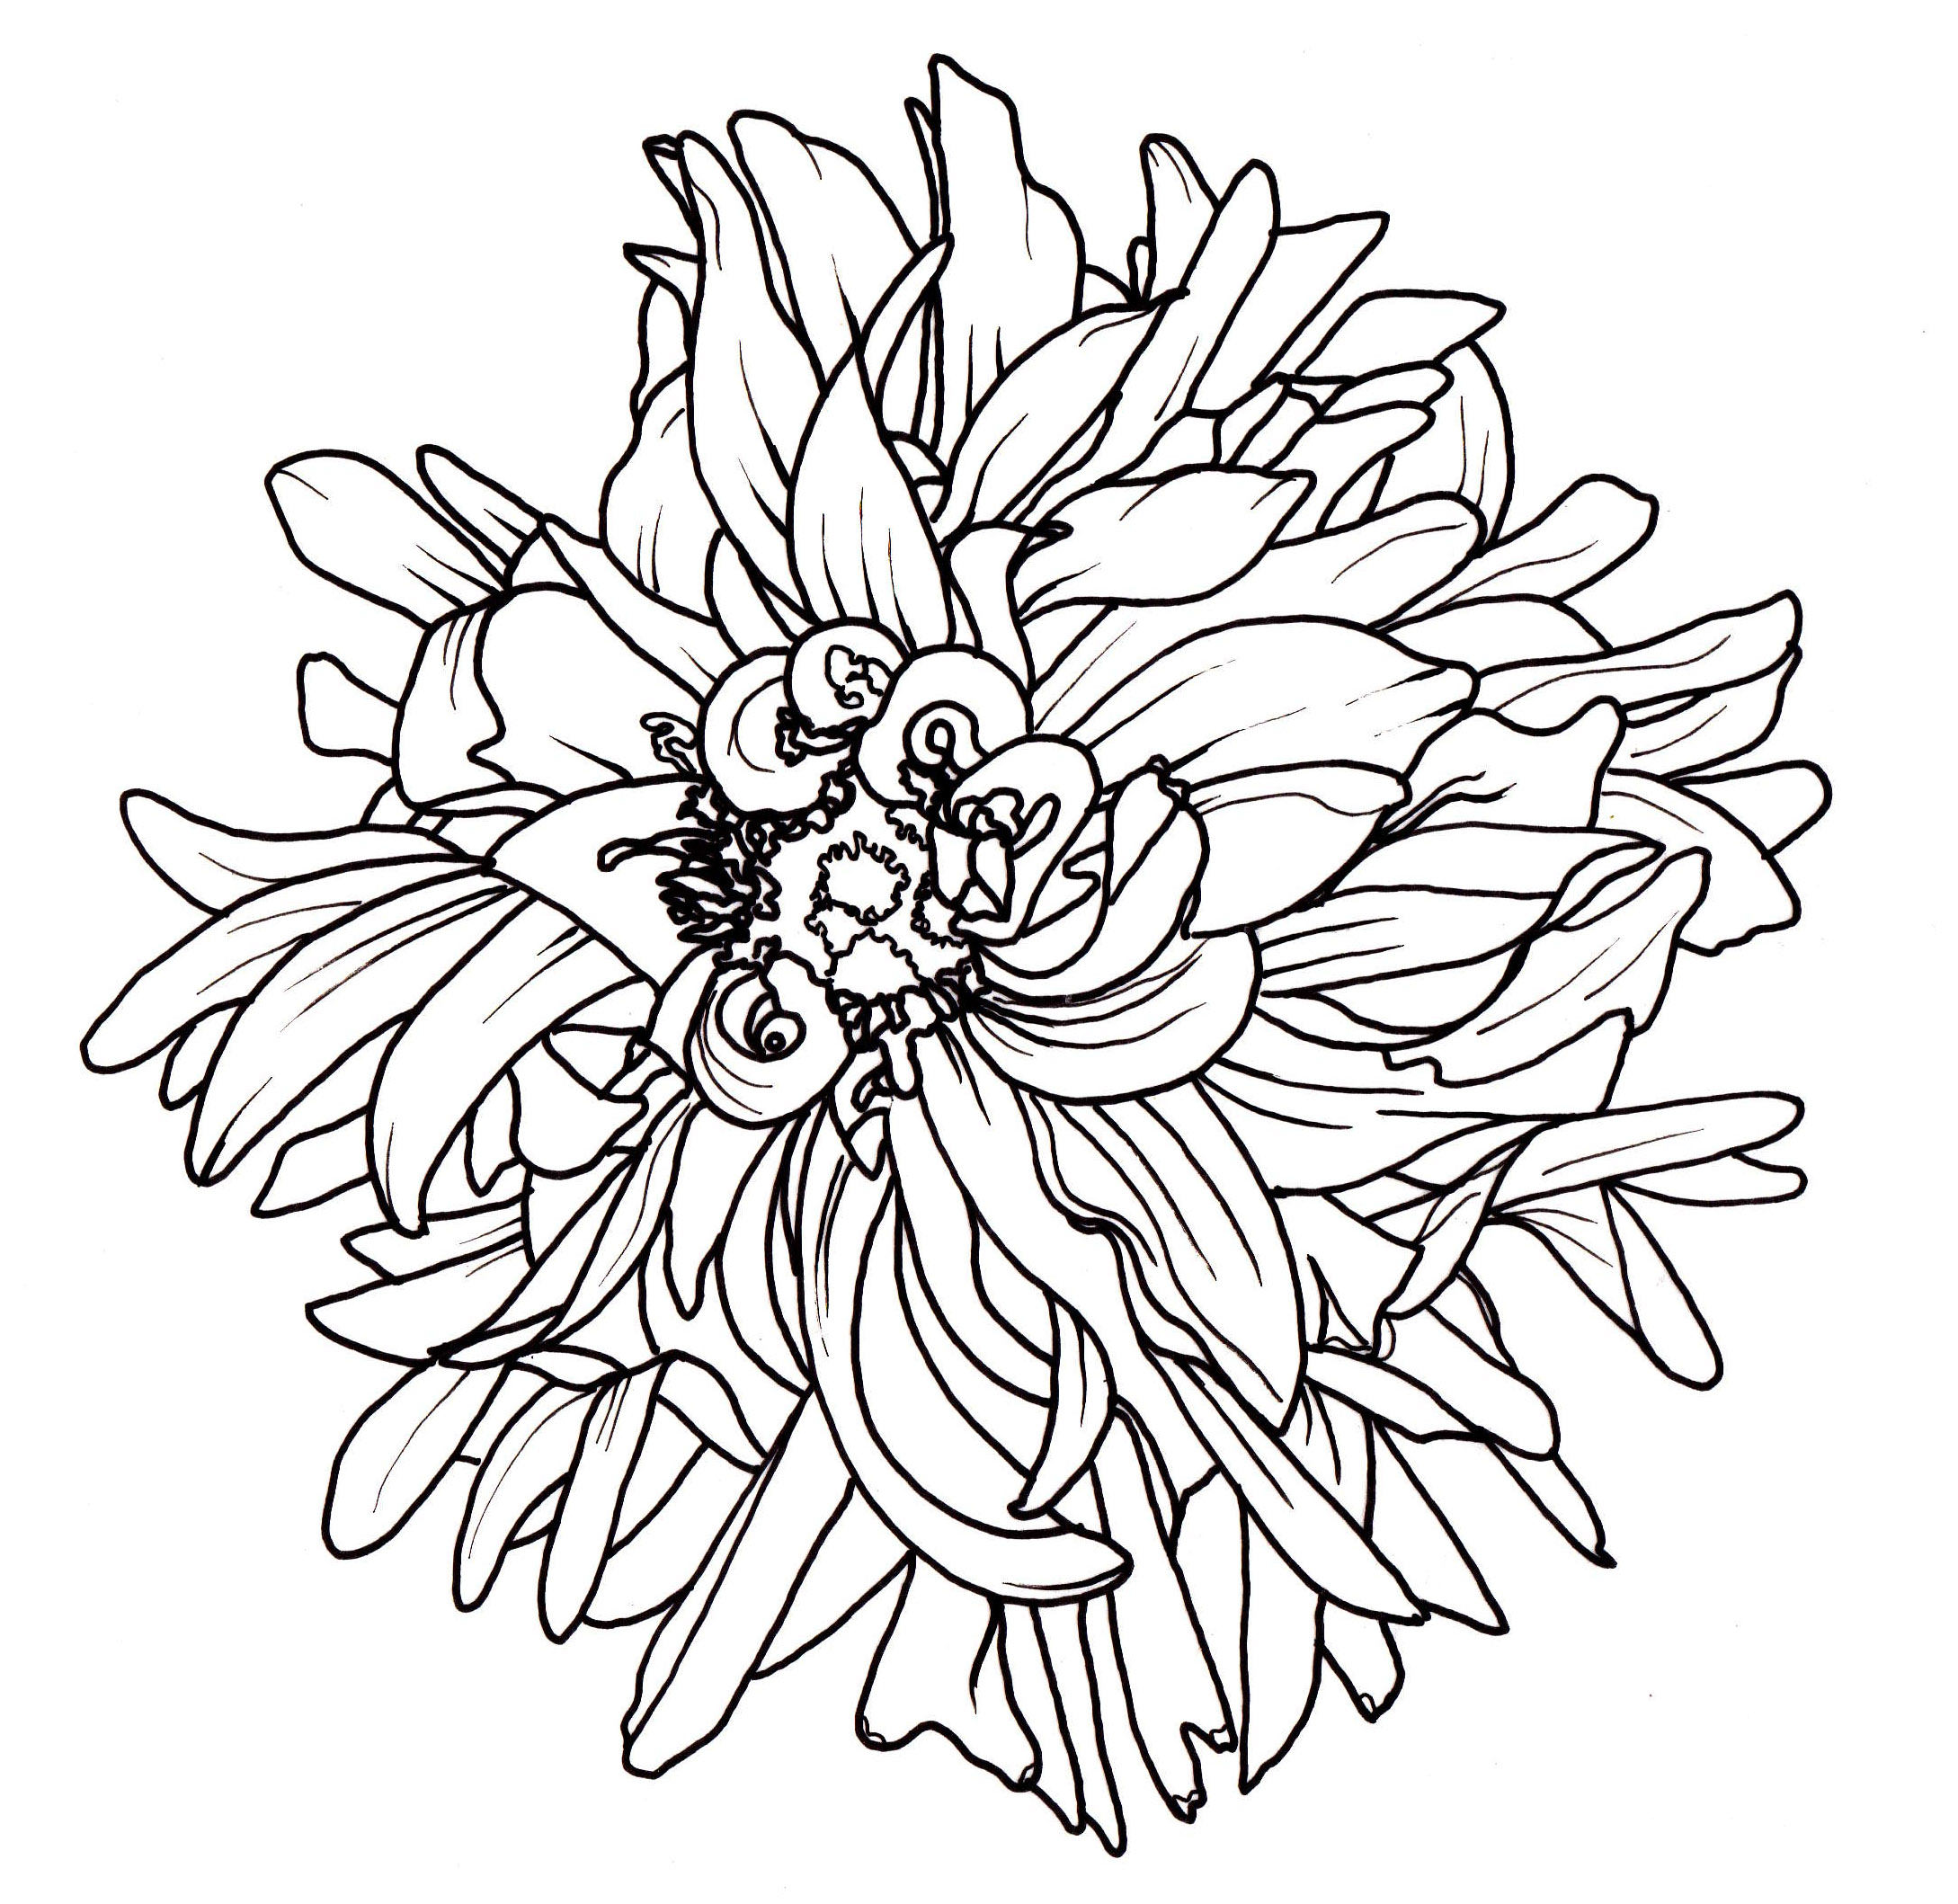 Dahlia flower drawing at getdrawings free for personal use 2178x2118 line drawing izmirmasajfo Gallery